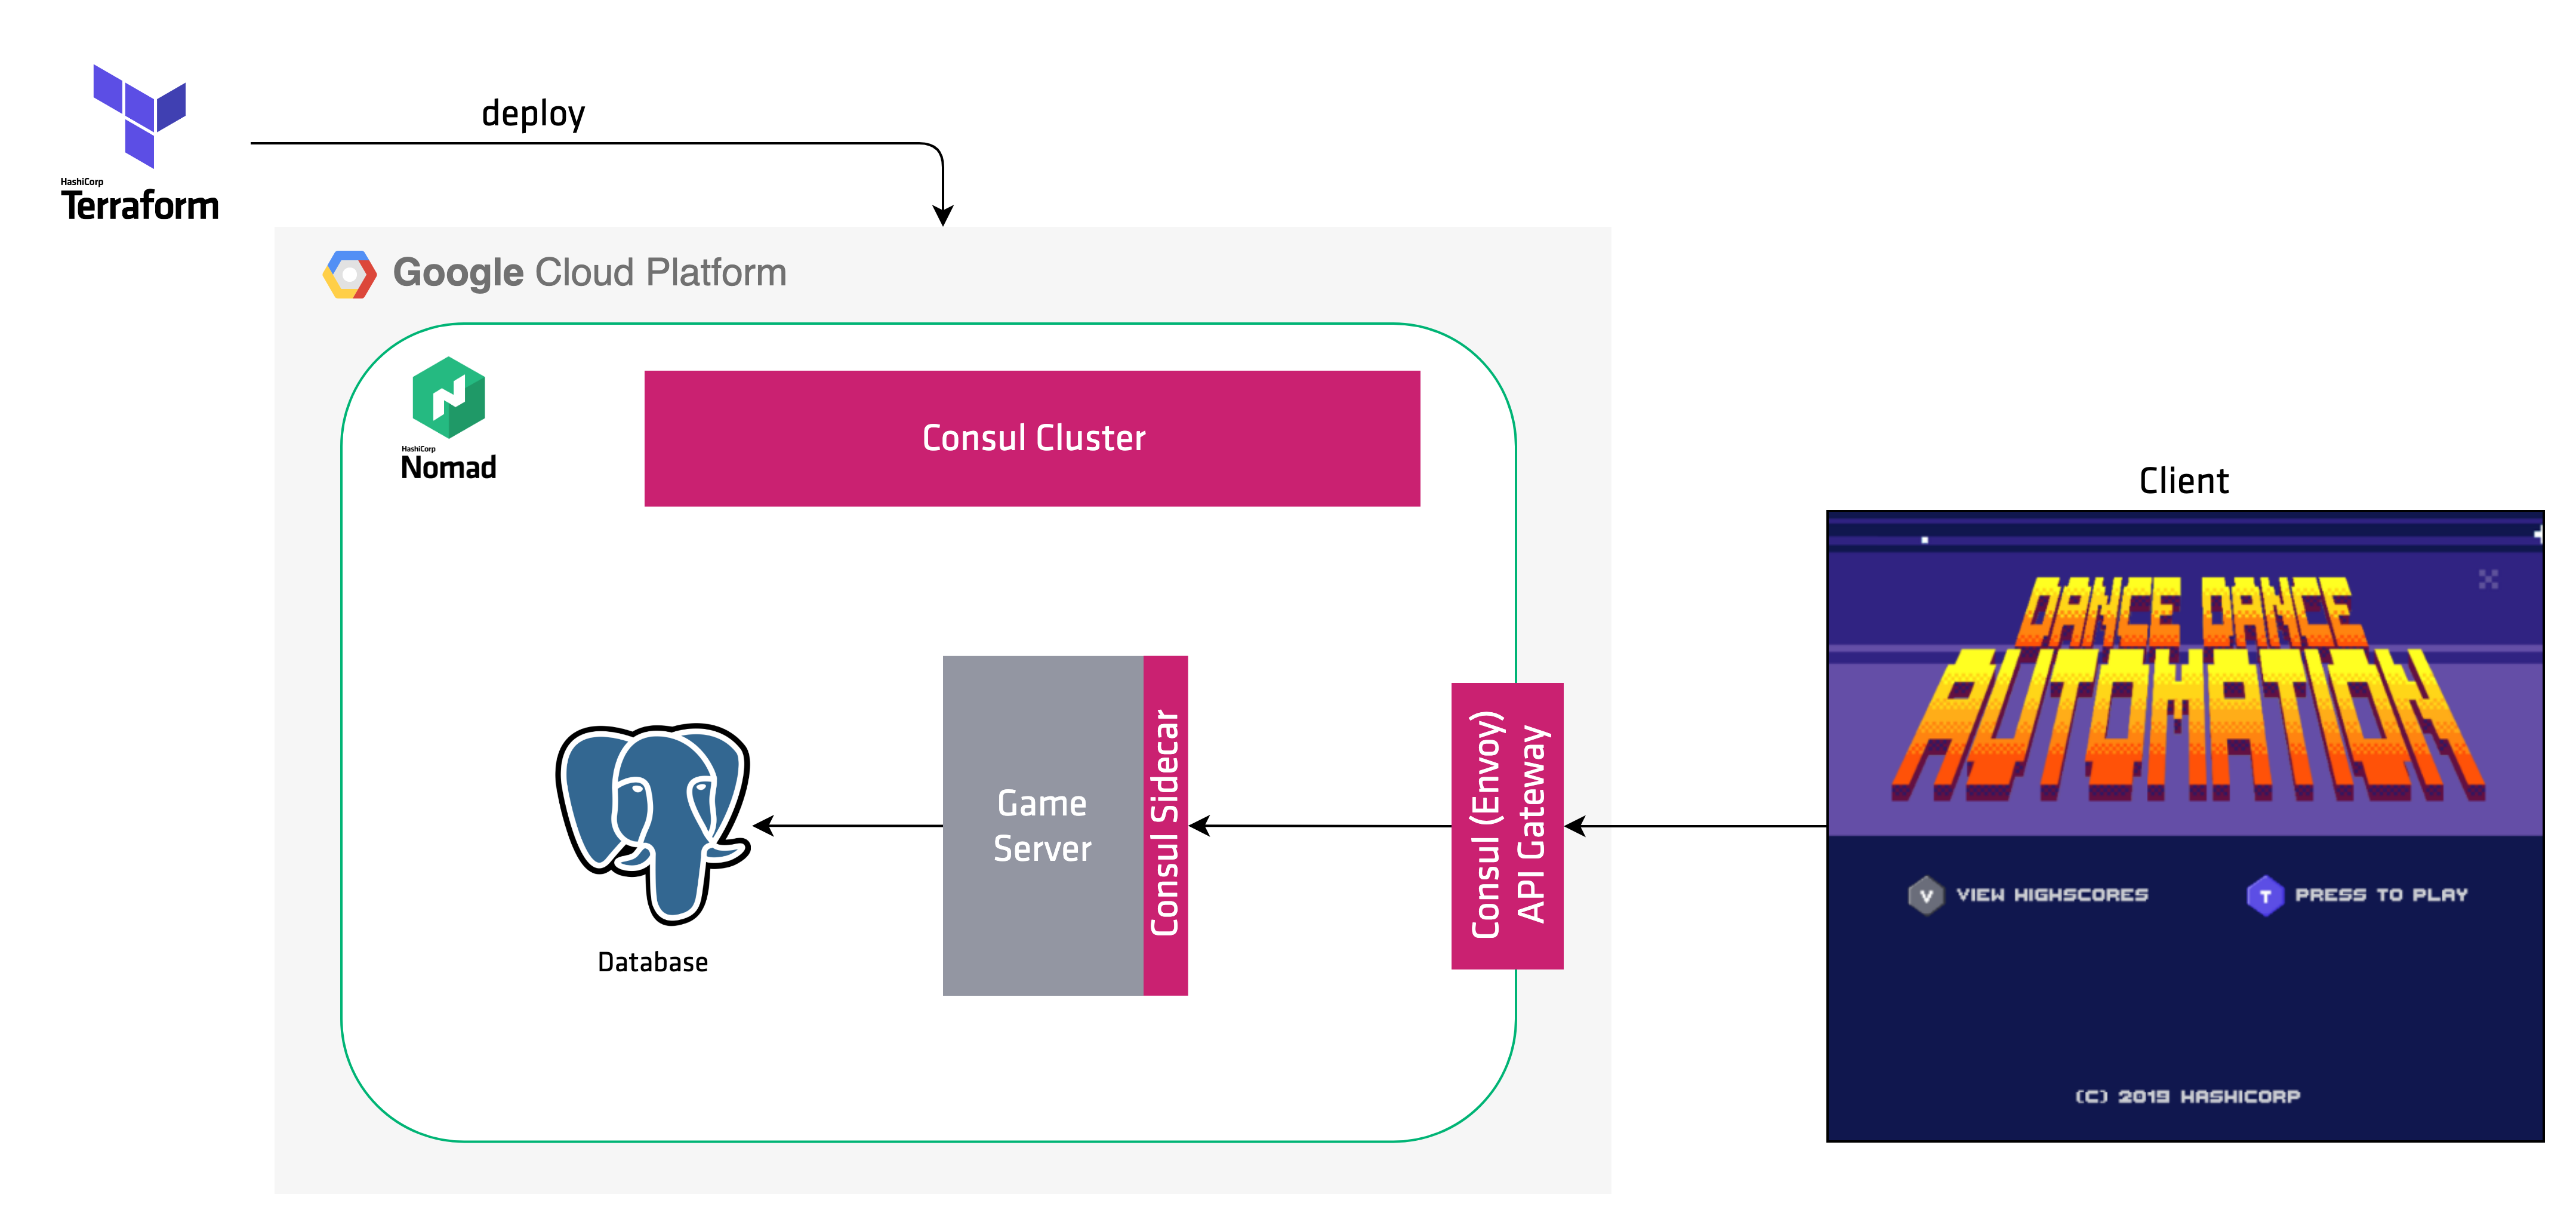 Architecture diagram with a database and Consul cluster on Google Cloud Platform